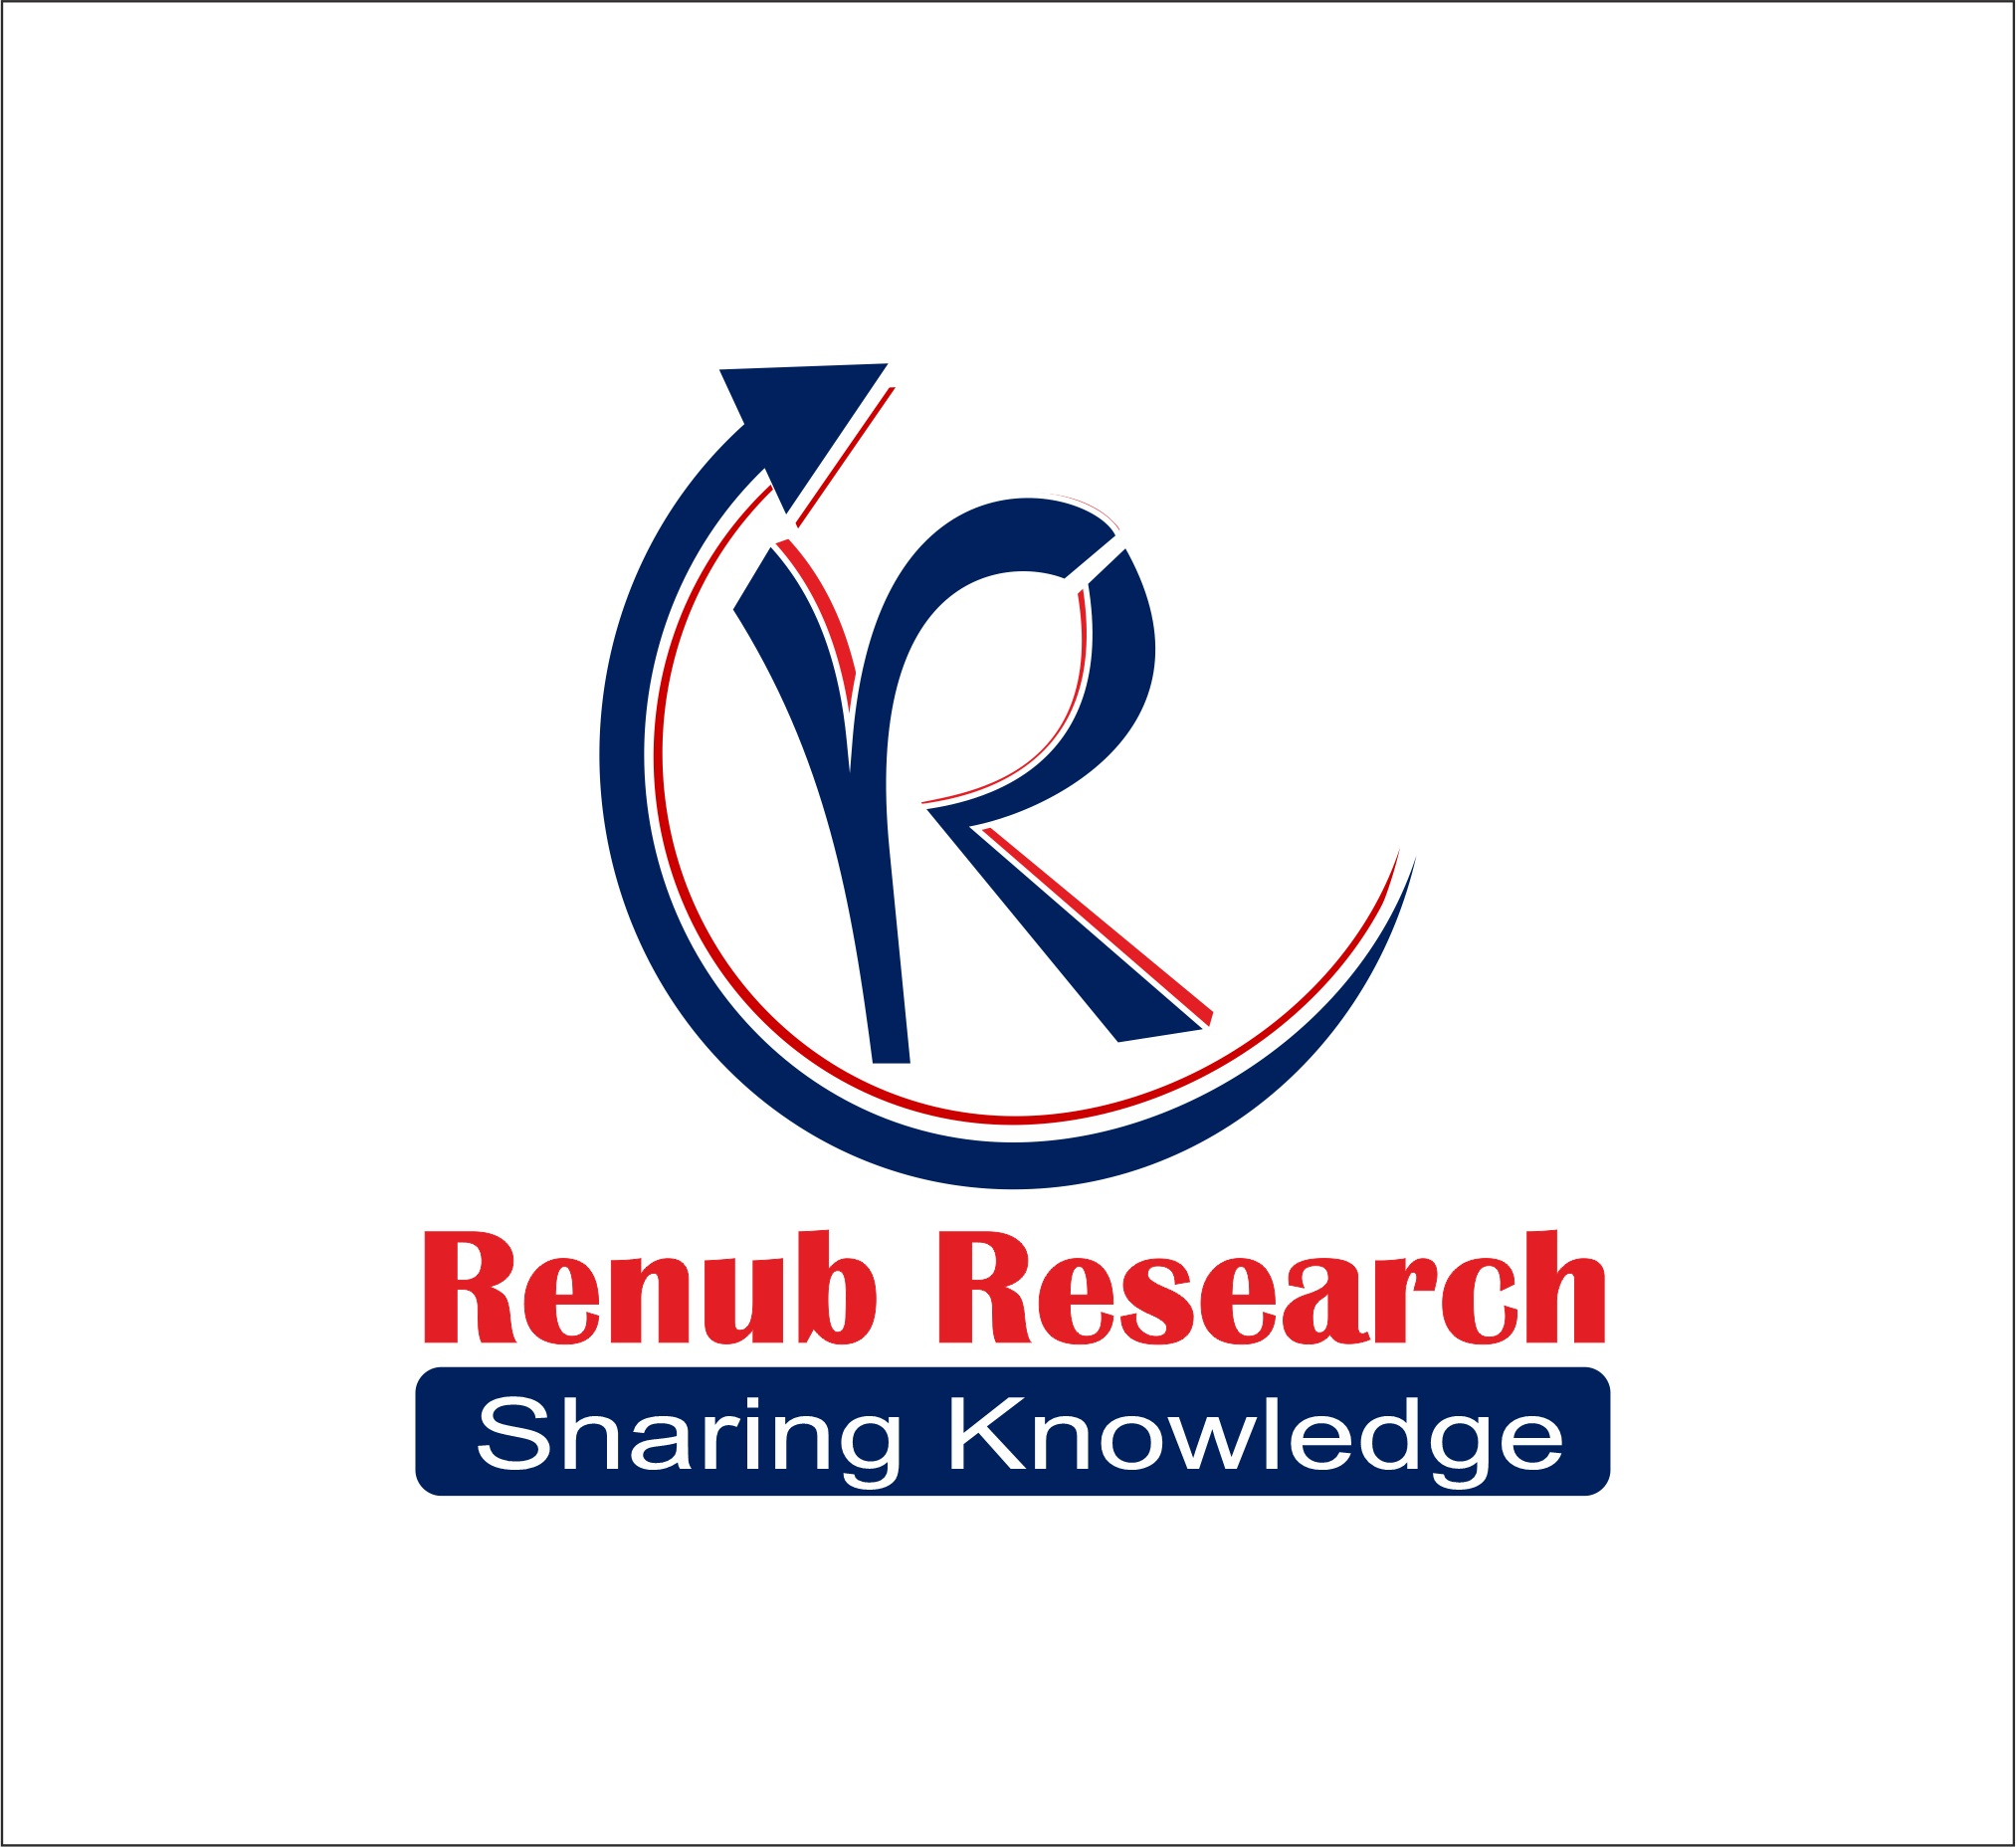 Global Molecular Diagnostics Market is anticipated to cross USD 22 Billion by the end of year 2025 - Renub Research